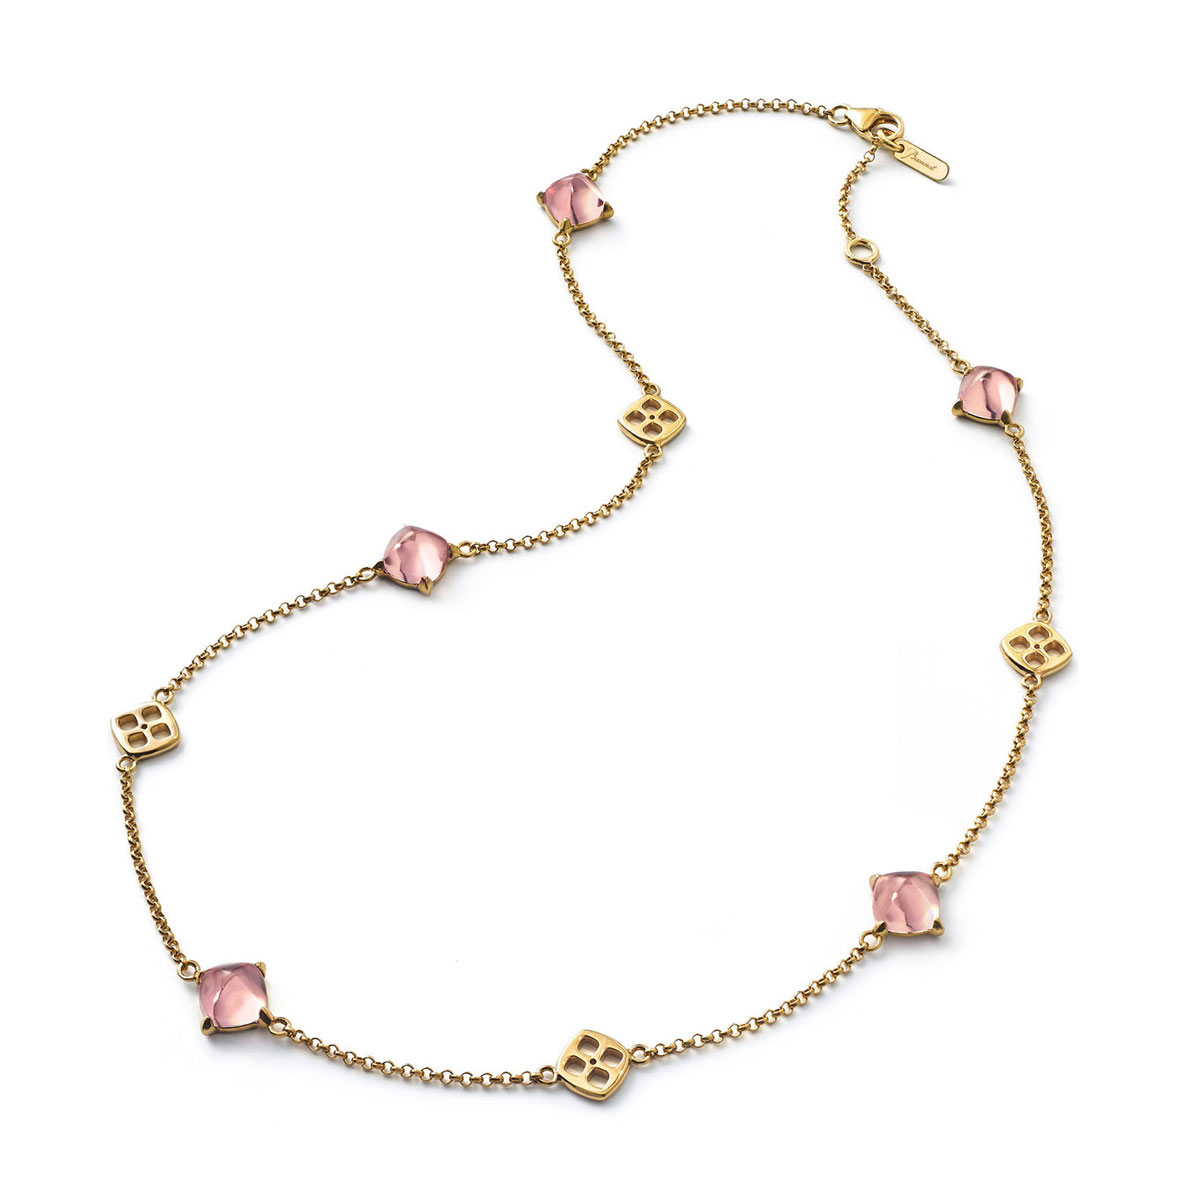 Baccarat Crystal Medicis Mini Necklace Vermeil Gold Pink